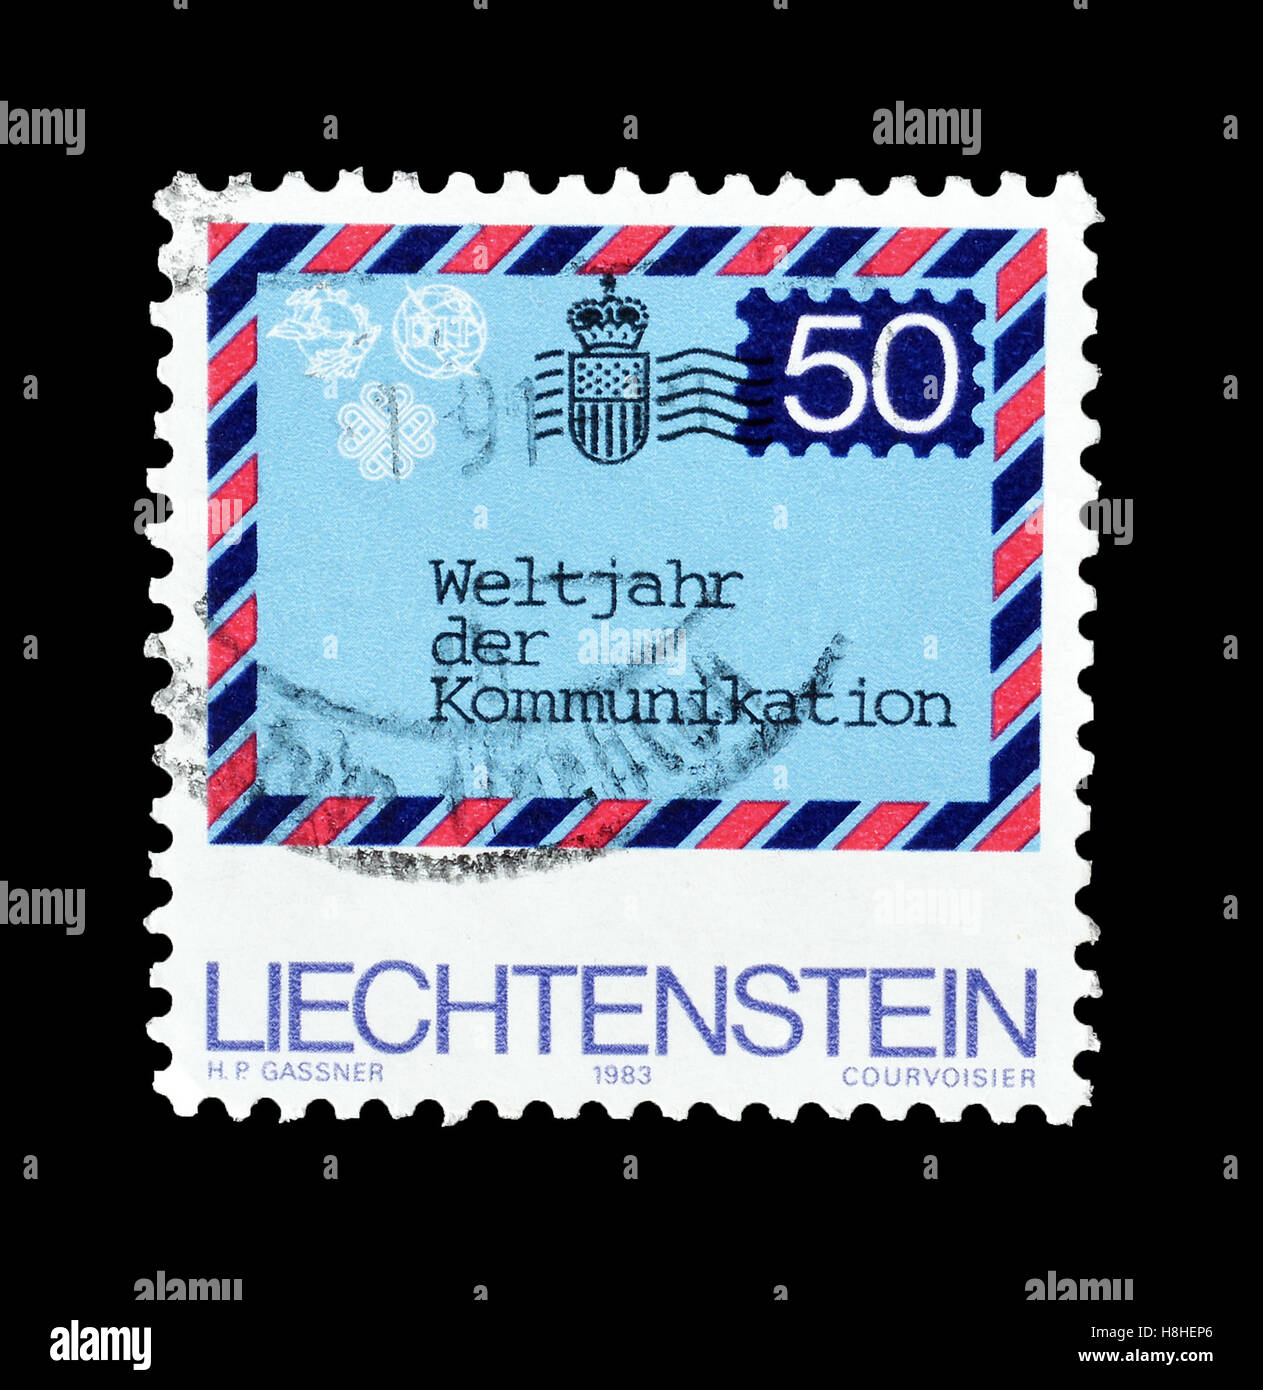 Liechtenstein stamp 1983 - Stock Image